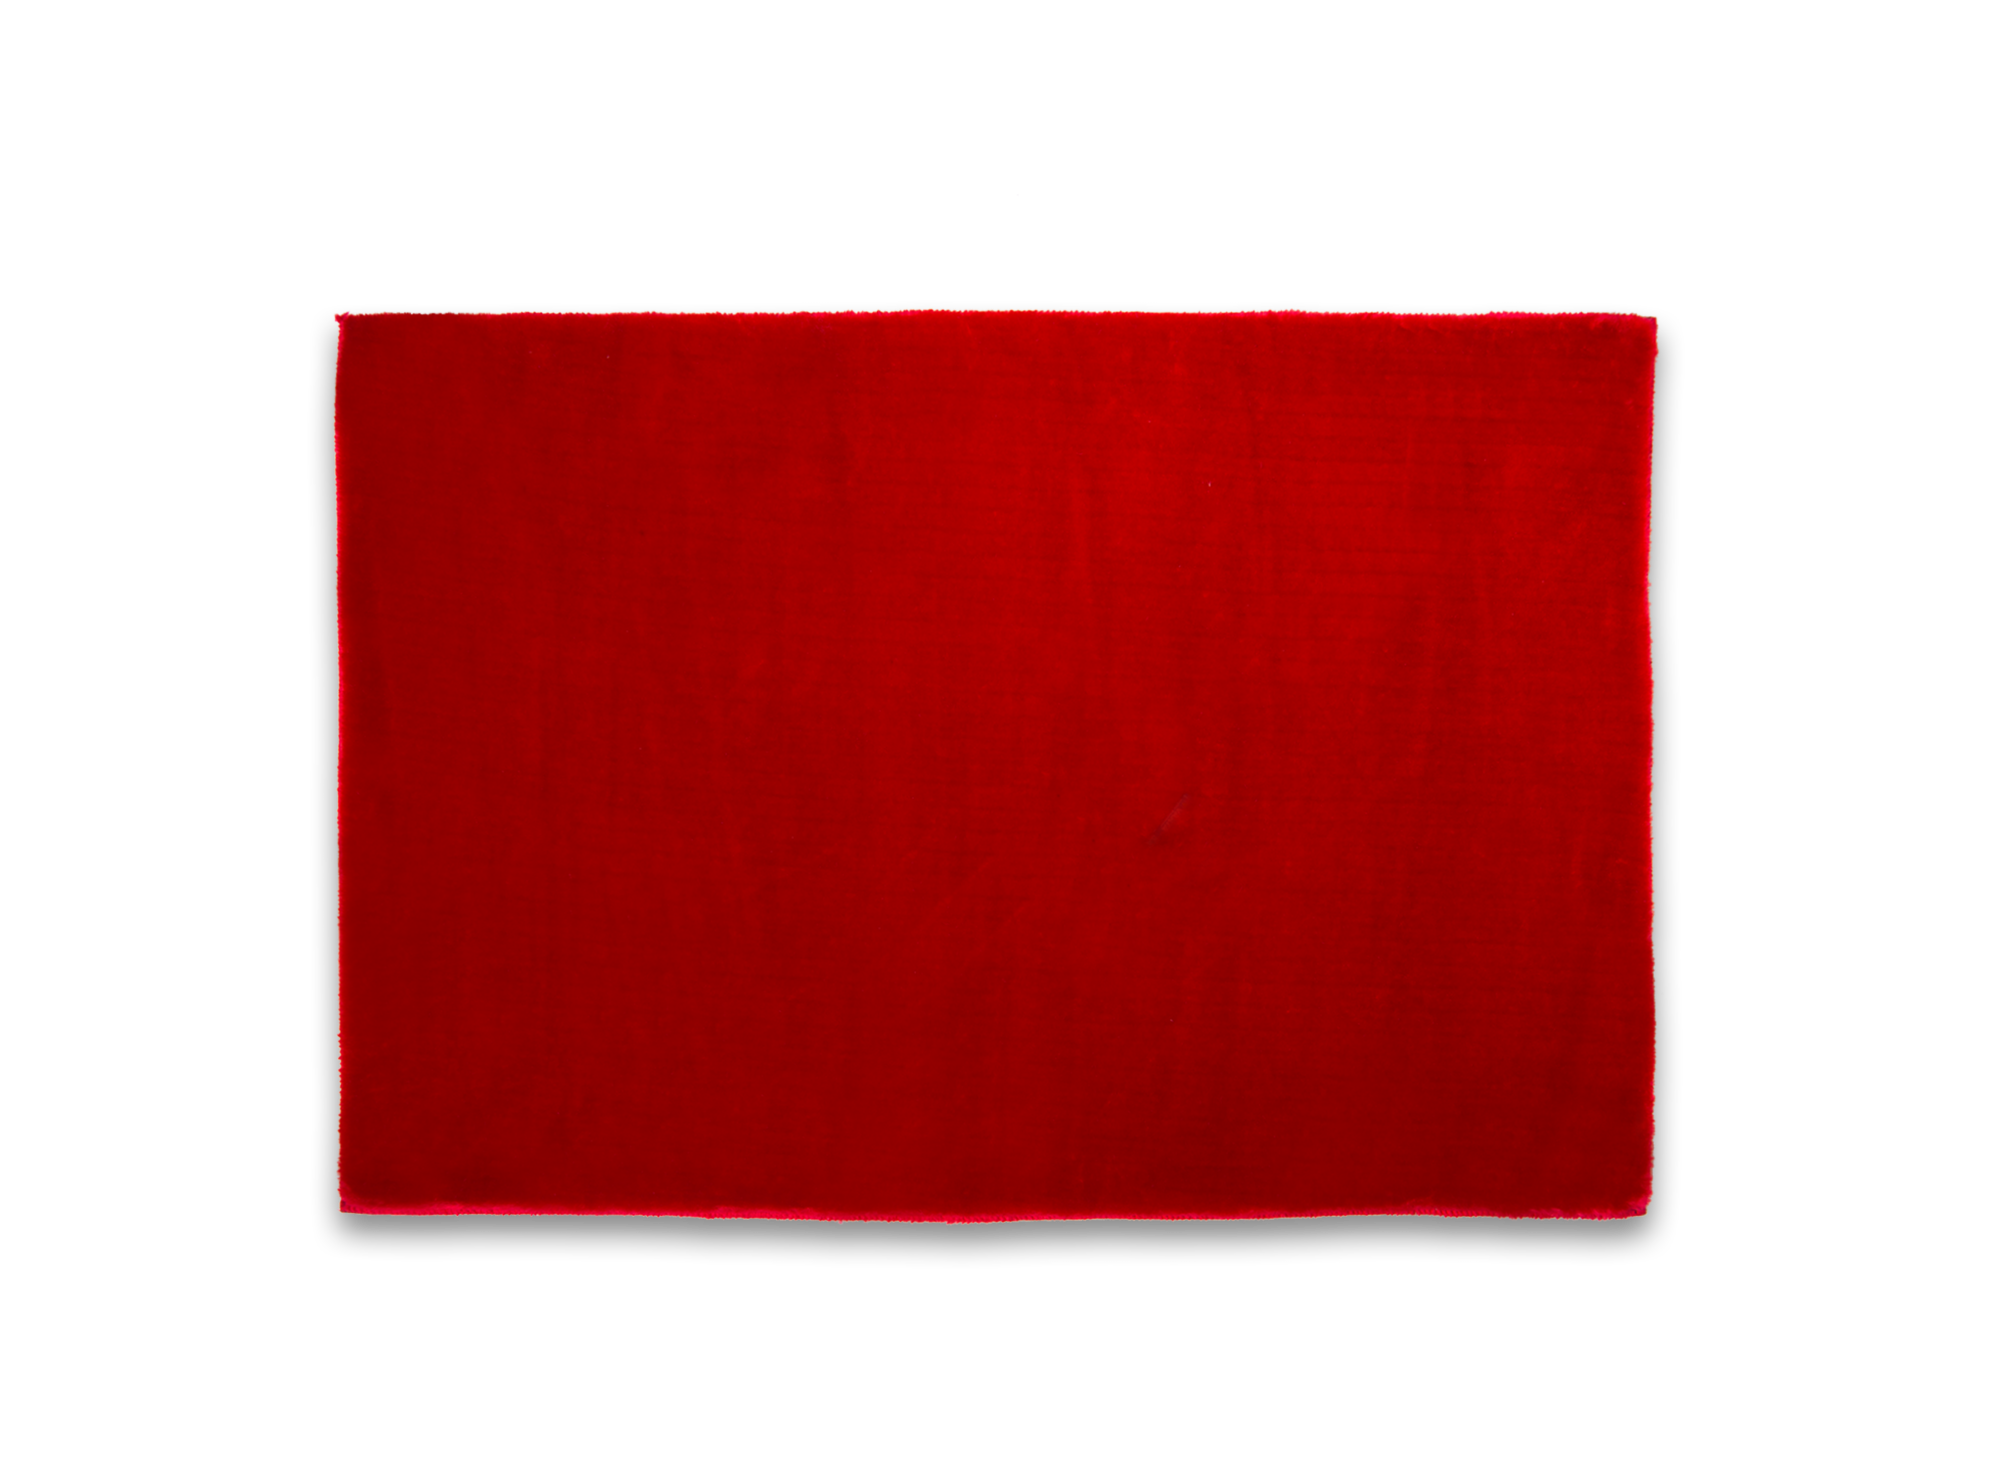 Tapis tufte mecanique 100% polyester coloris rouge densite 800g/m2 ...